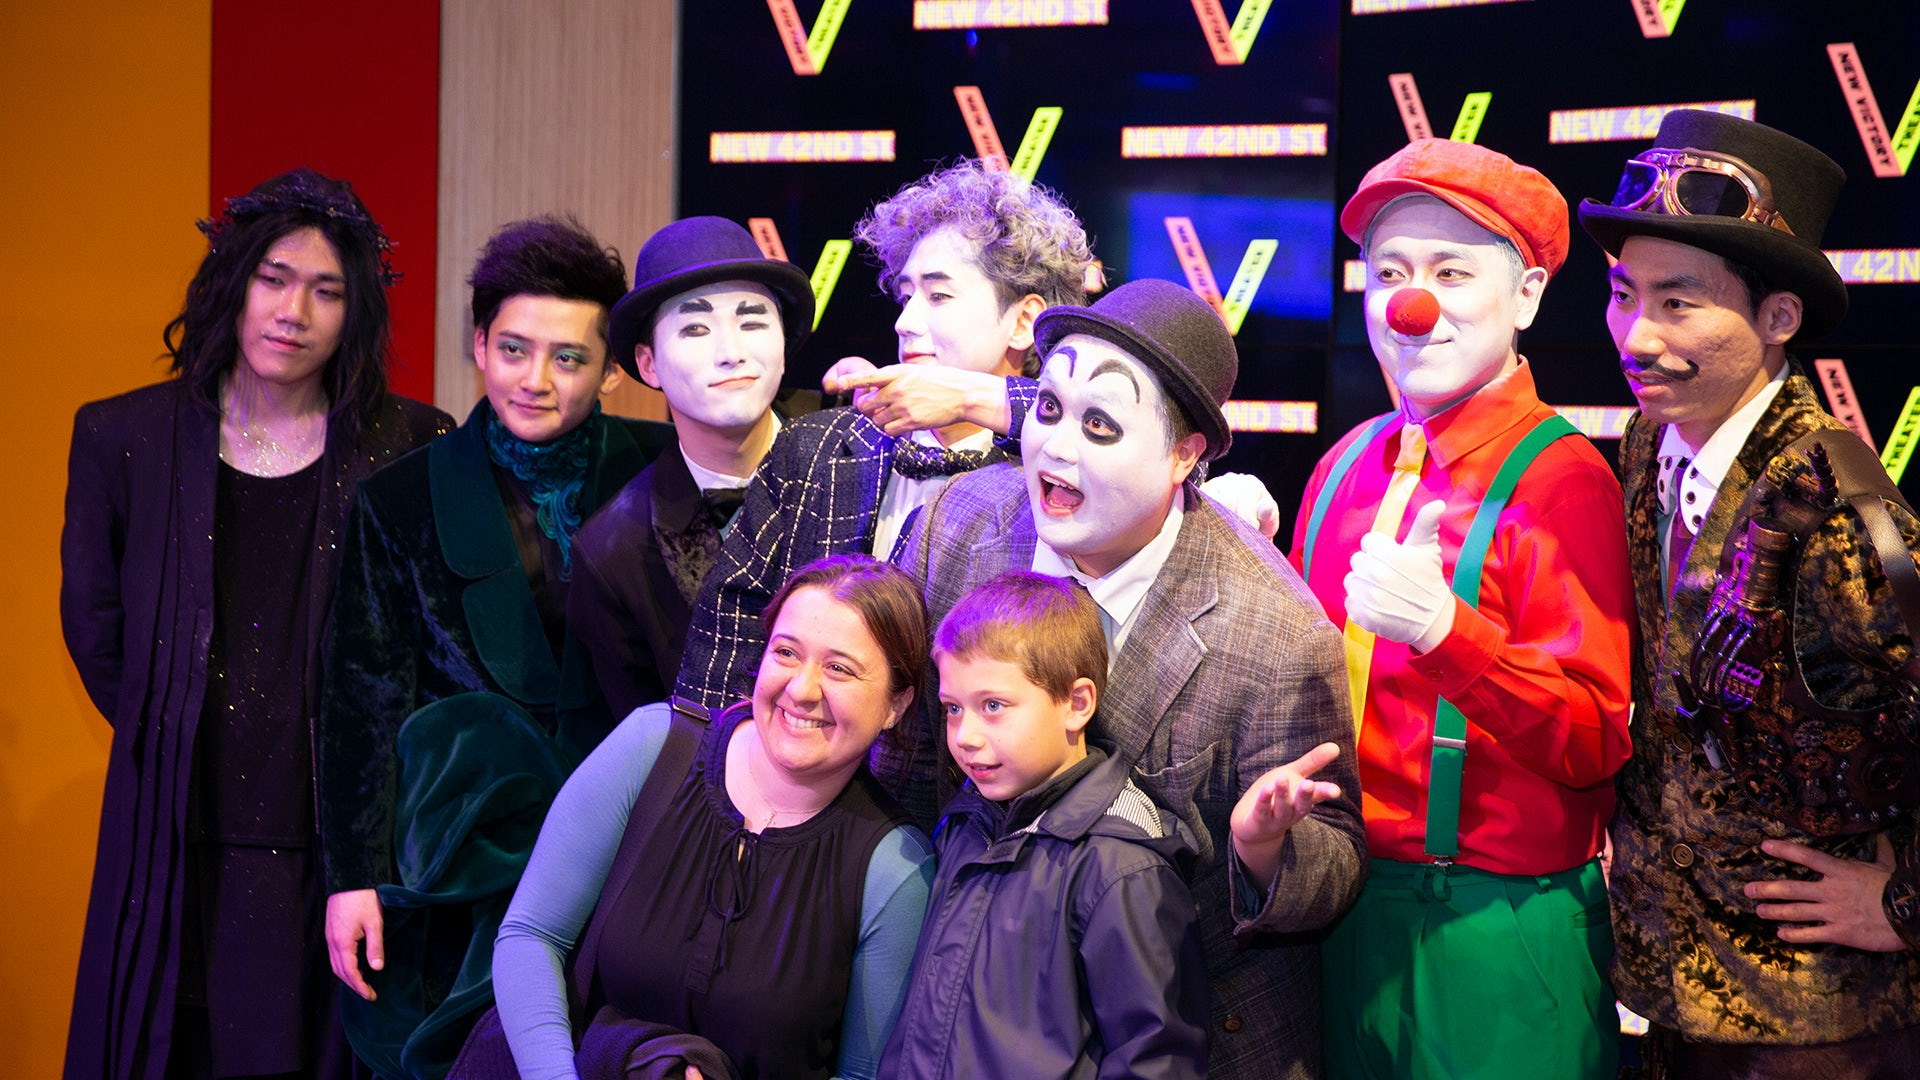 A mom and her son pose for a photo with the cast of SNAP at a post-show Meet & Greet.